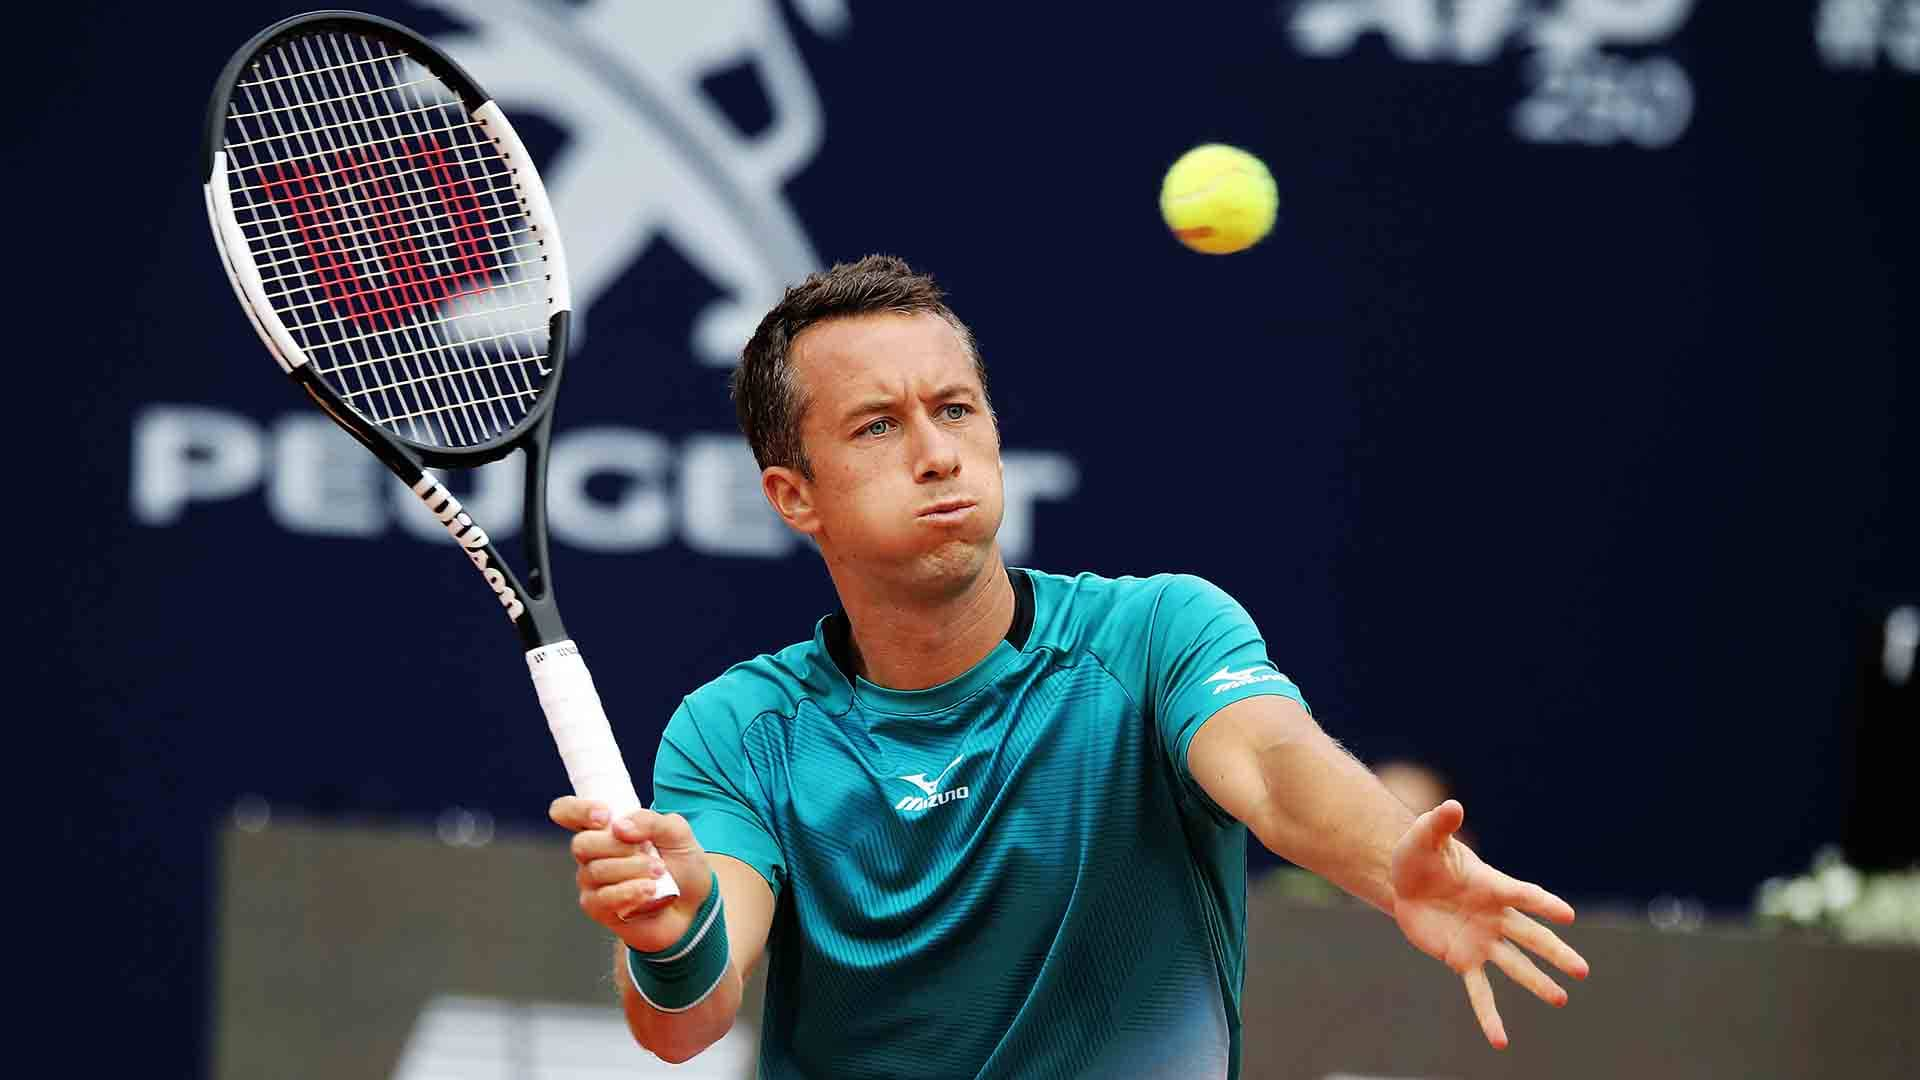 Philipp Kohlschreiber improves to 3-2 in his FedEx ATP Head2Head series against Richard Gasquet.